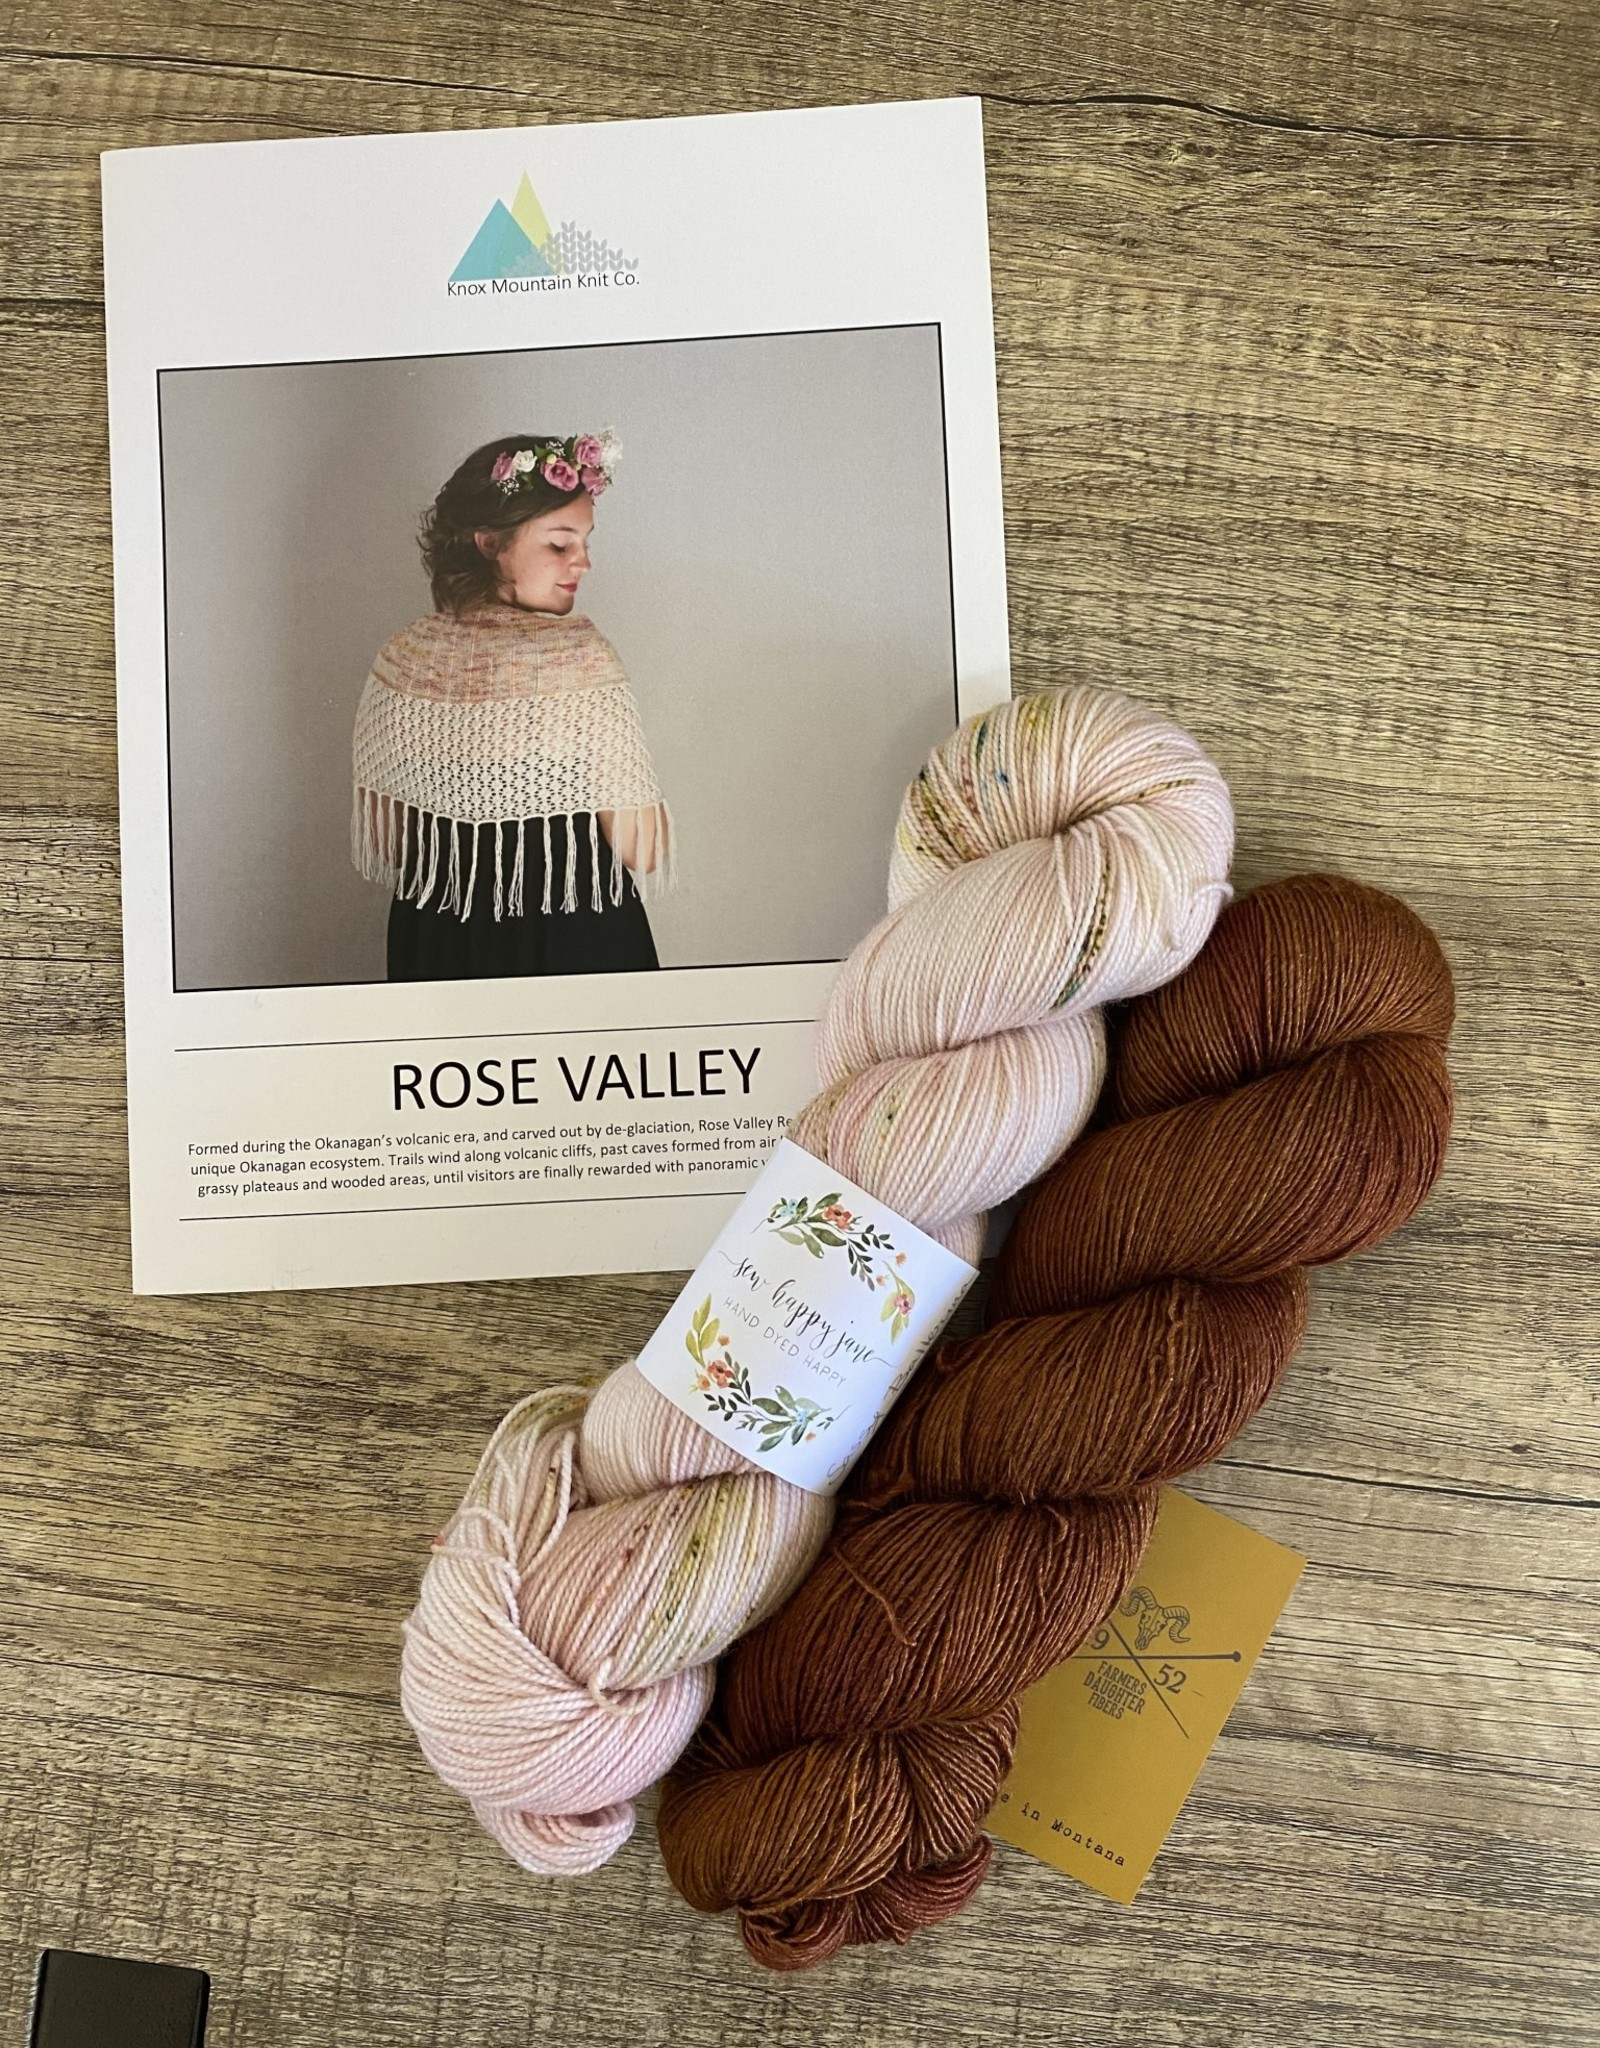 Purl2 Rose Valley Kit